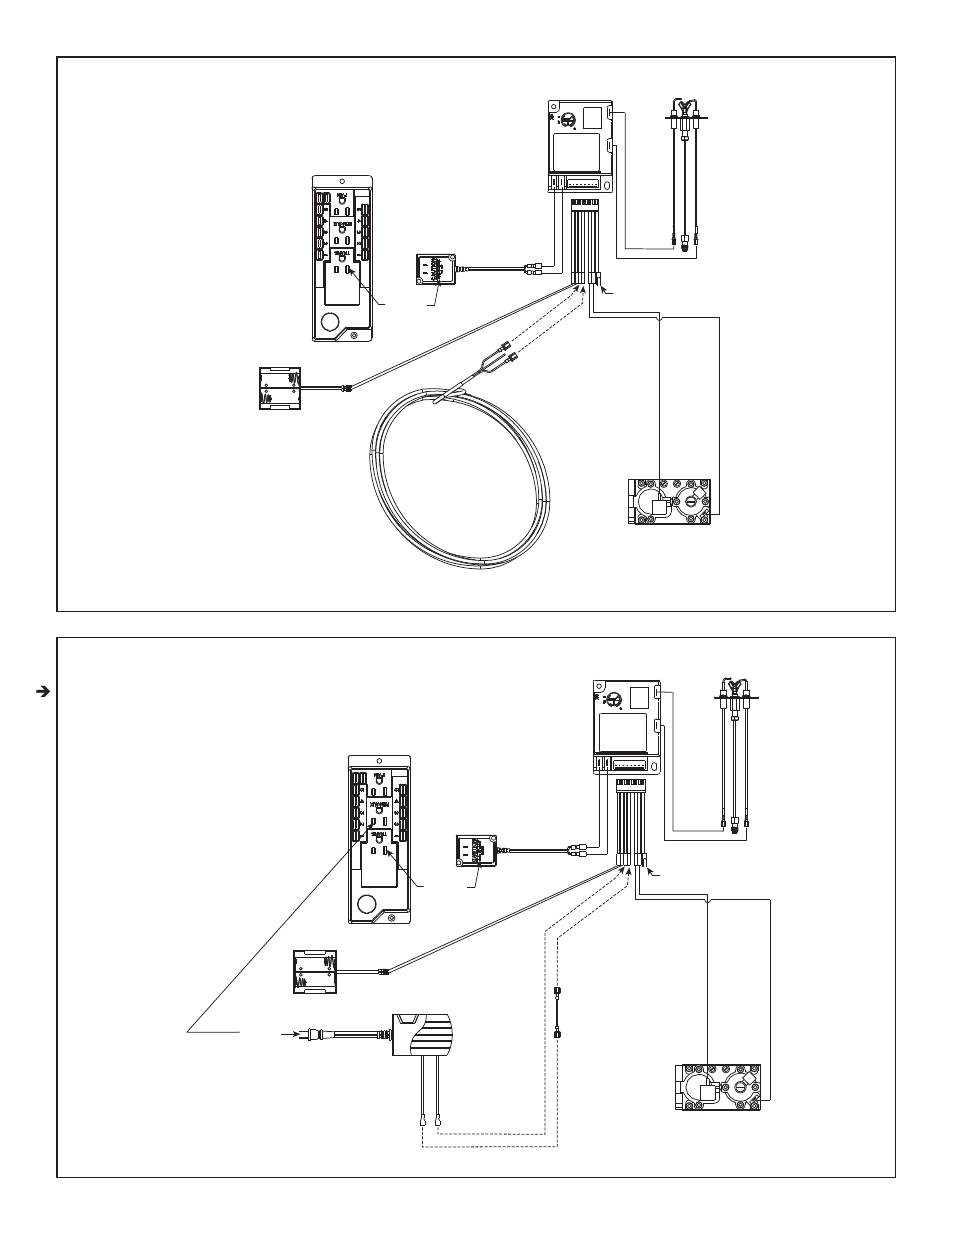 Heat & Glo Fireplace HEAT&GLO ST-36TRB-IPI User Manual   Page 52 / 82Manuals Directory